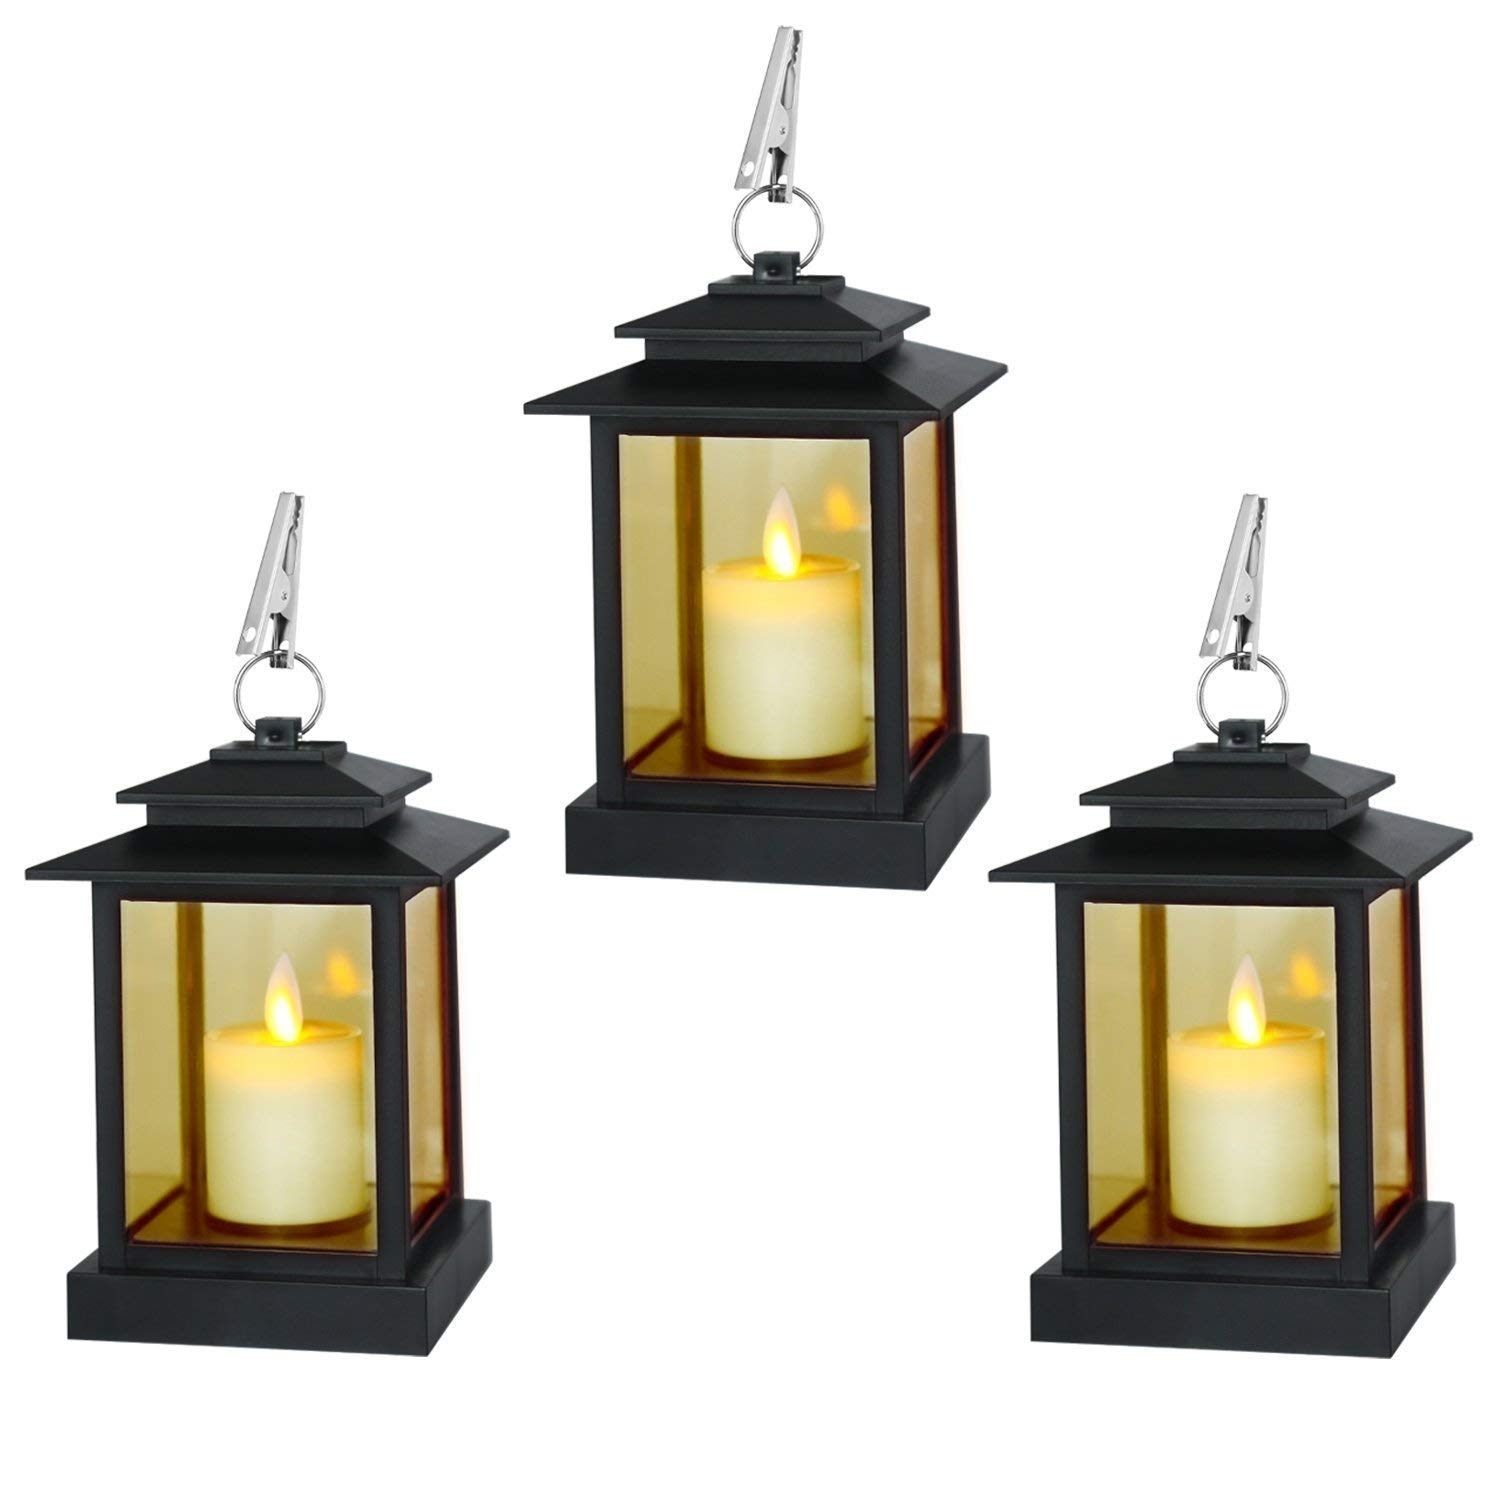 Amazon: Decorative Candle Lanterns, Set Of 3 Indoor And Outdoor pertaining to Outdoor Lanterns With Timers (Image 2 of 20)